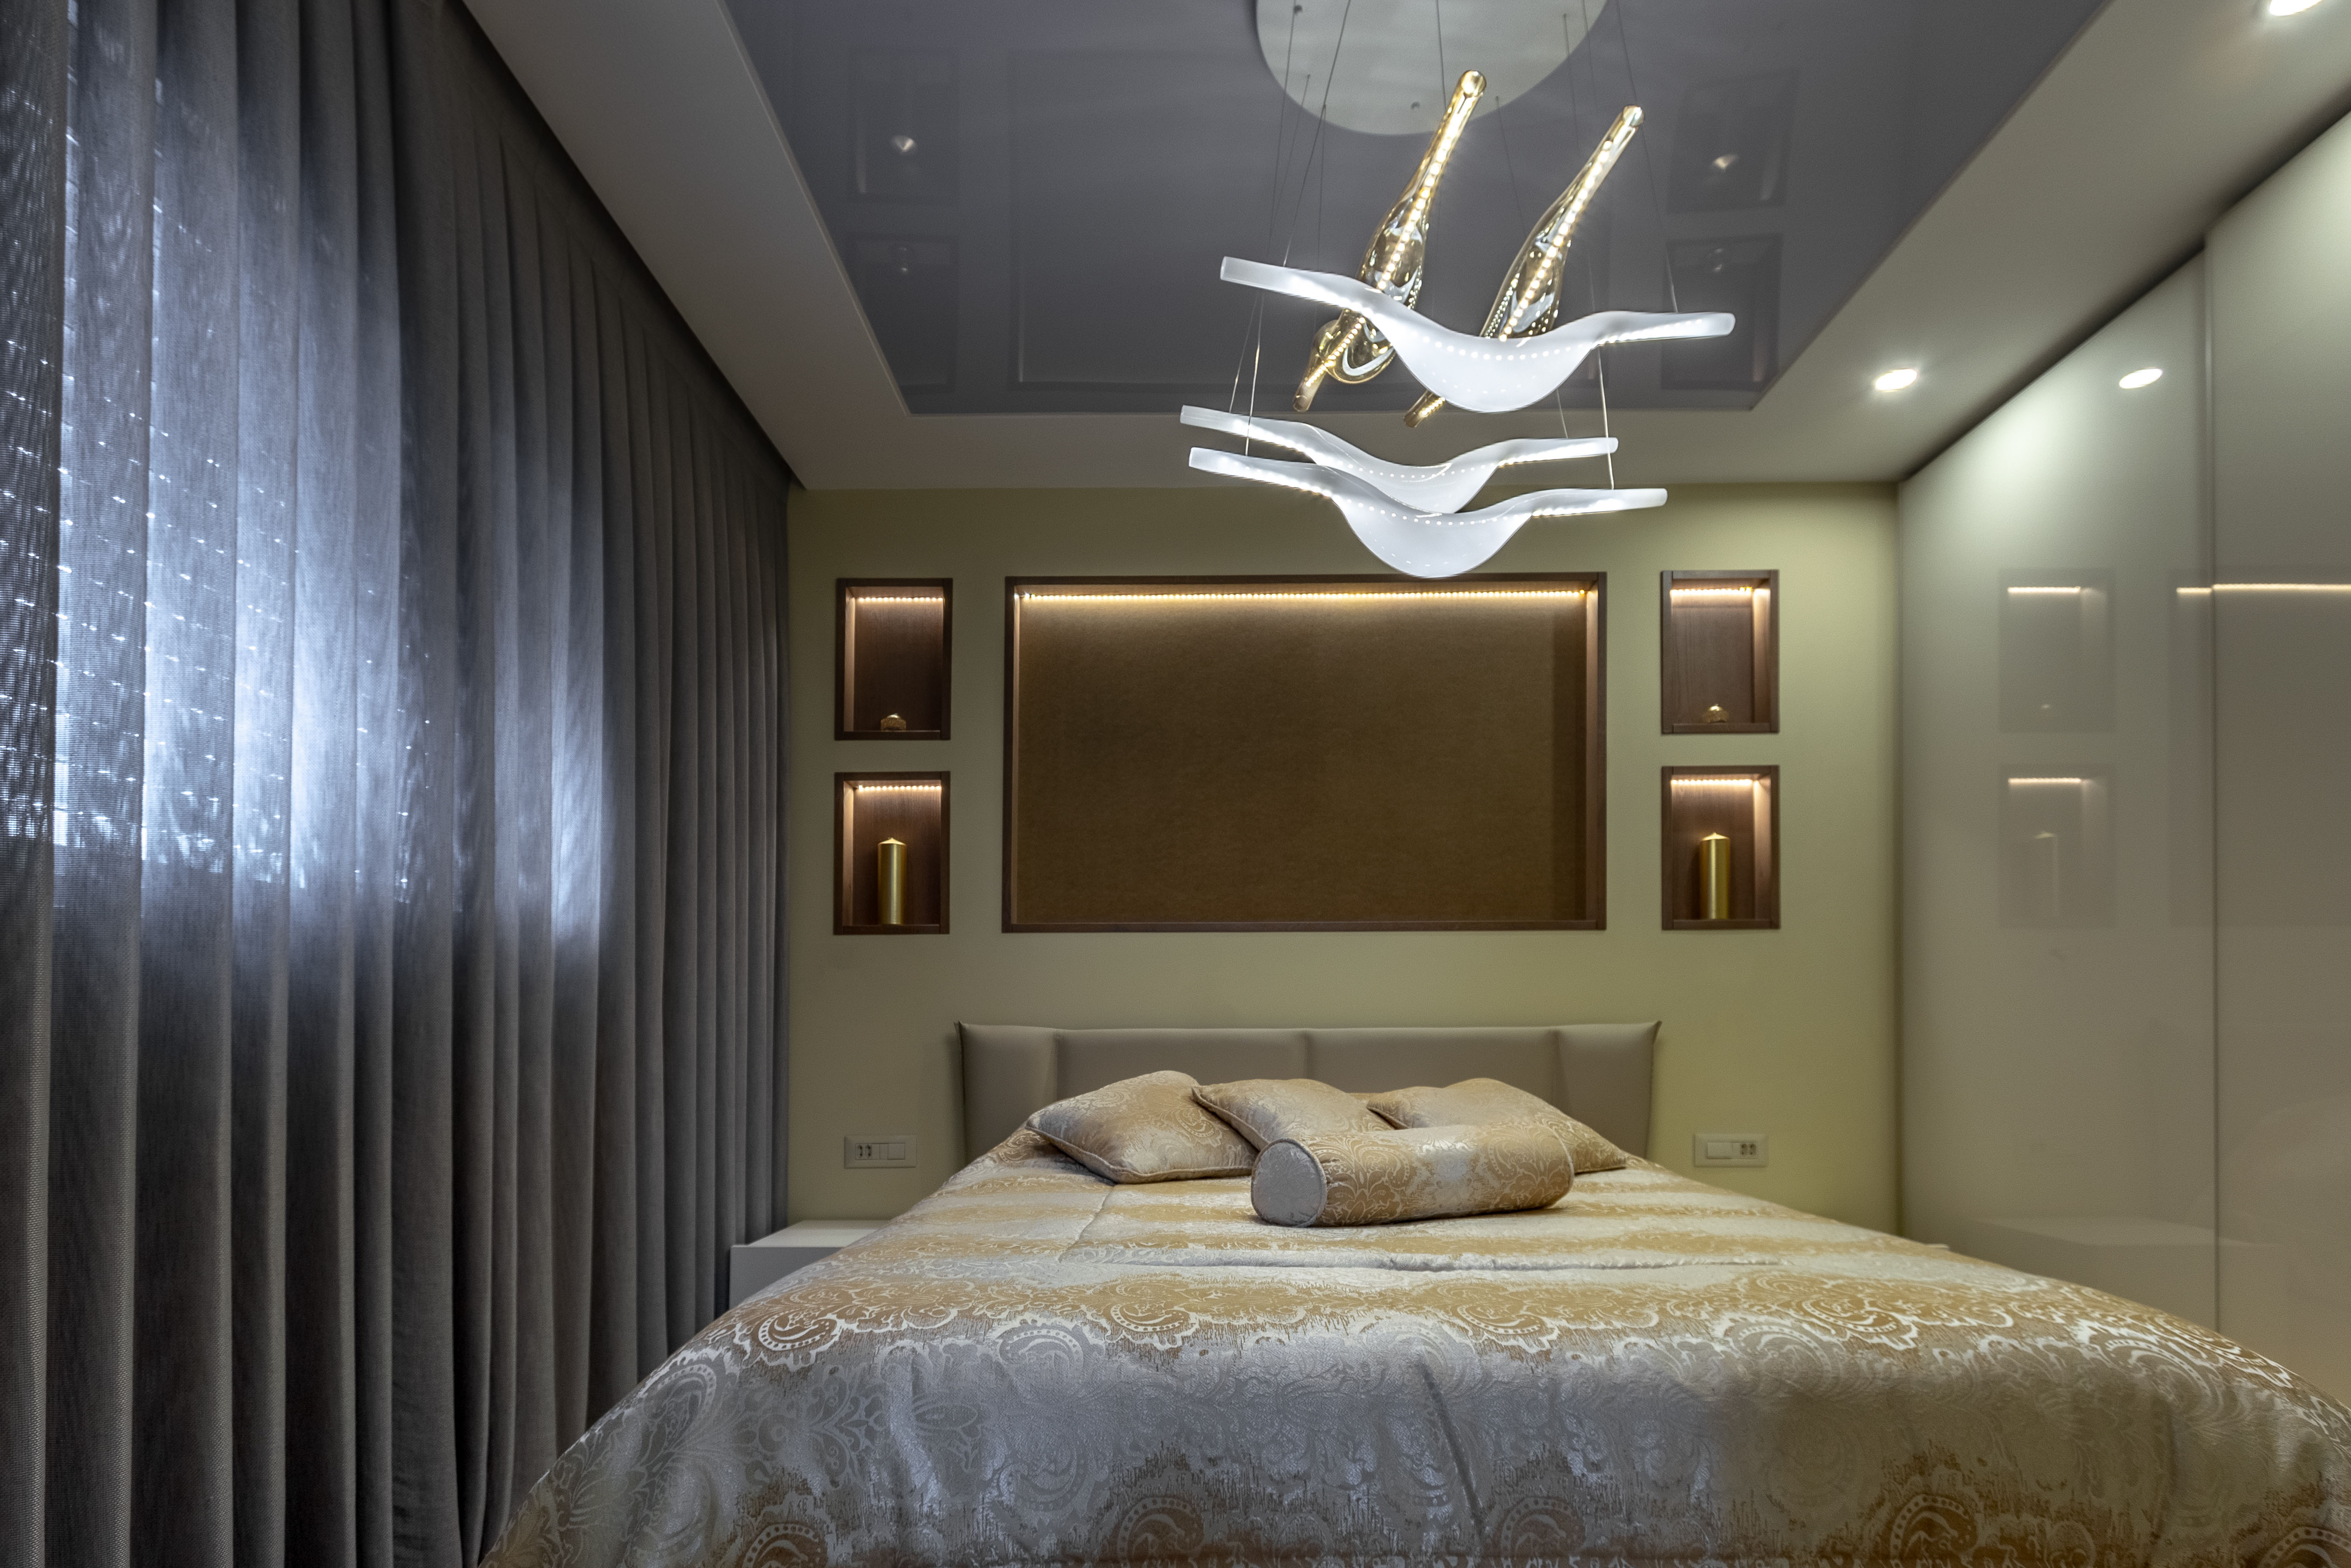 Bedroom atmosphere design